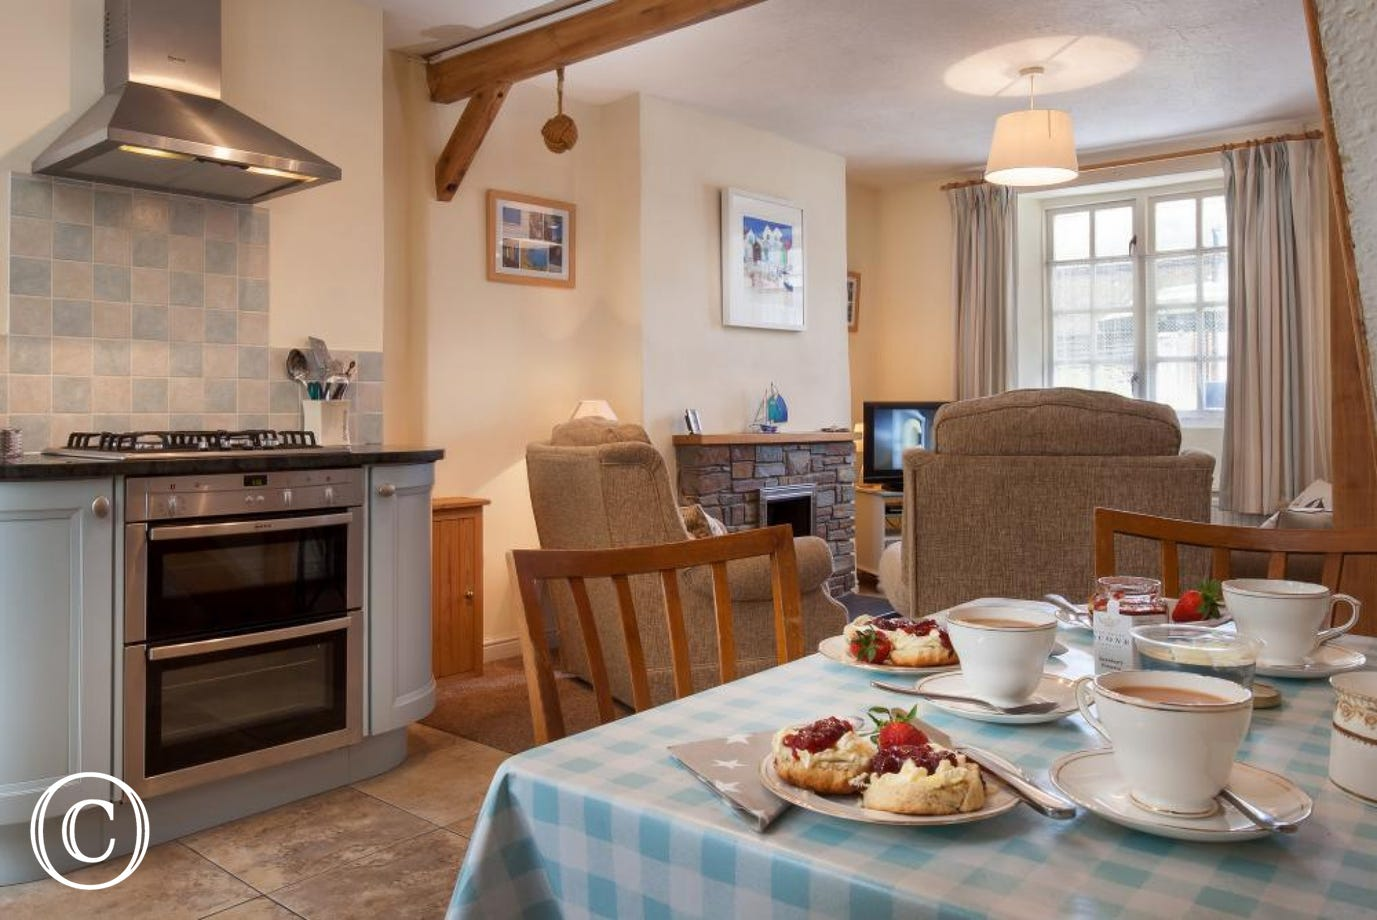 Open plan inviting spacious holiday cottage with kitchen area, dining area and living room in one bright and welcoming space